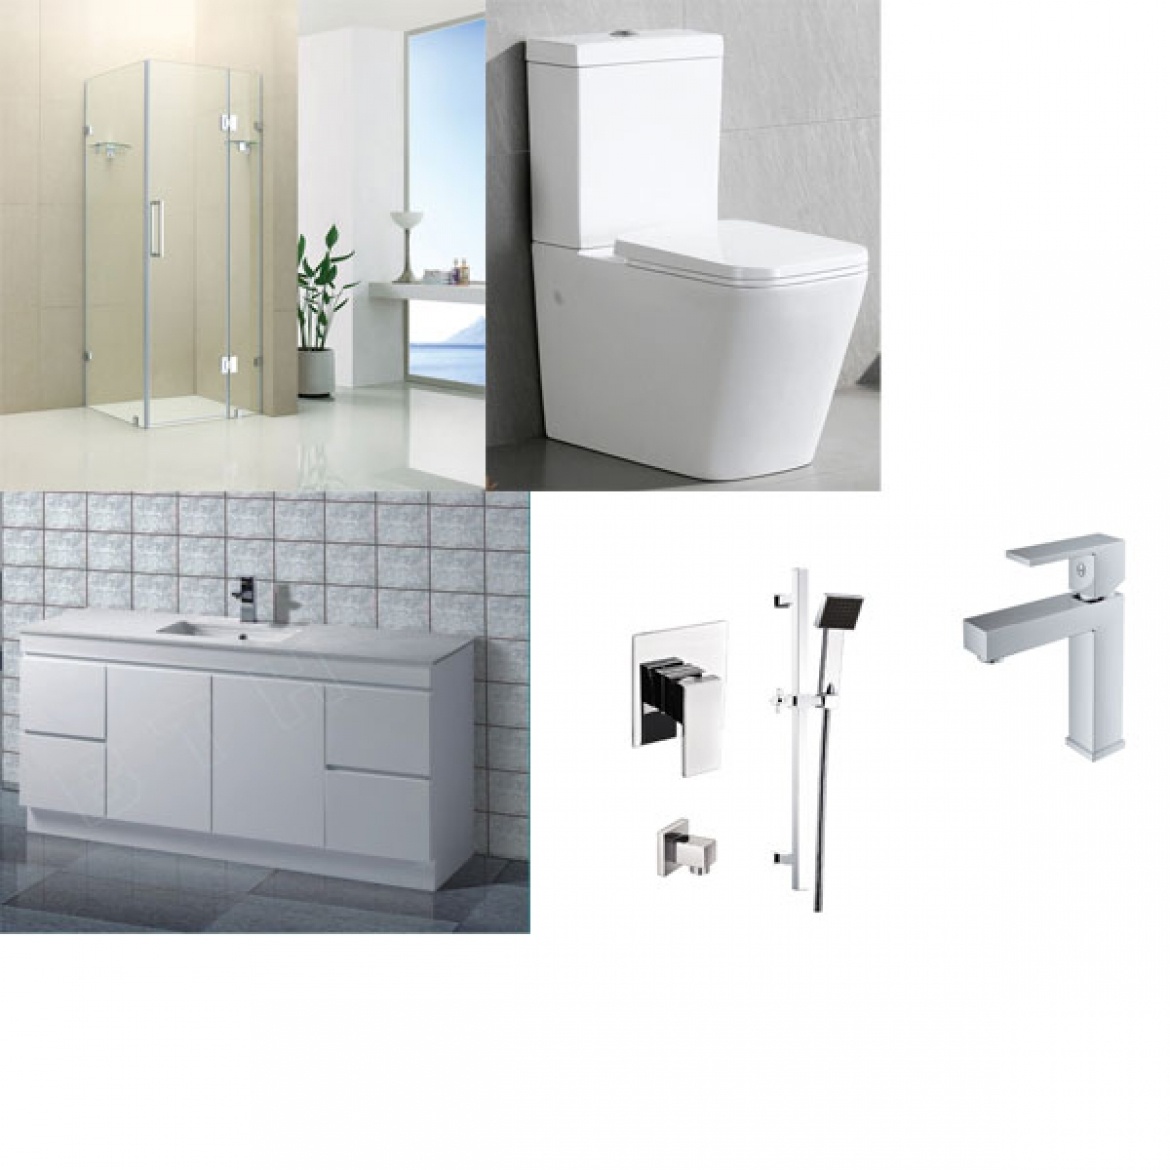 Melbourne kitchen and bathroom Melbourne basin Melbourne kitchen     Bathroom stone top vanity package 1